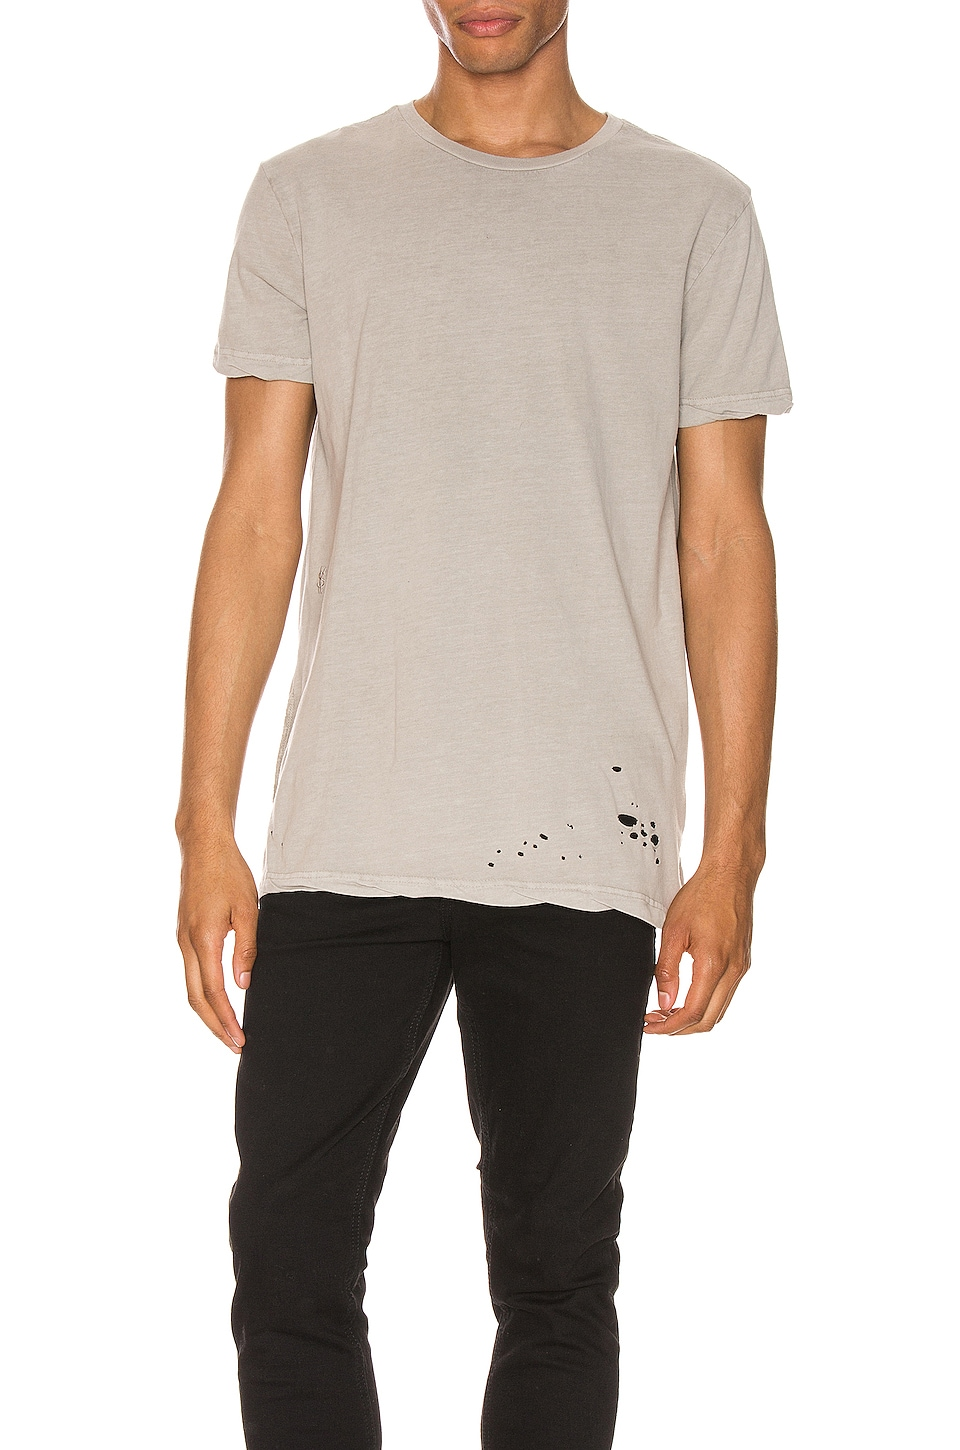 Ksubi Sioux Cement Tee in Stone